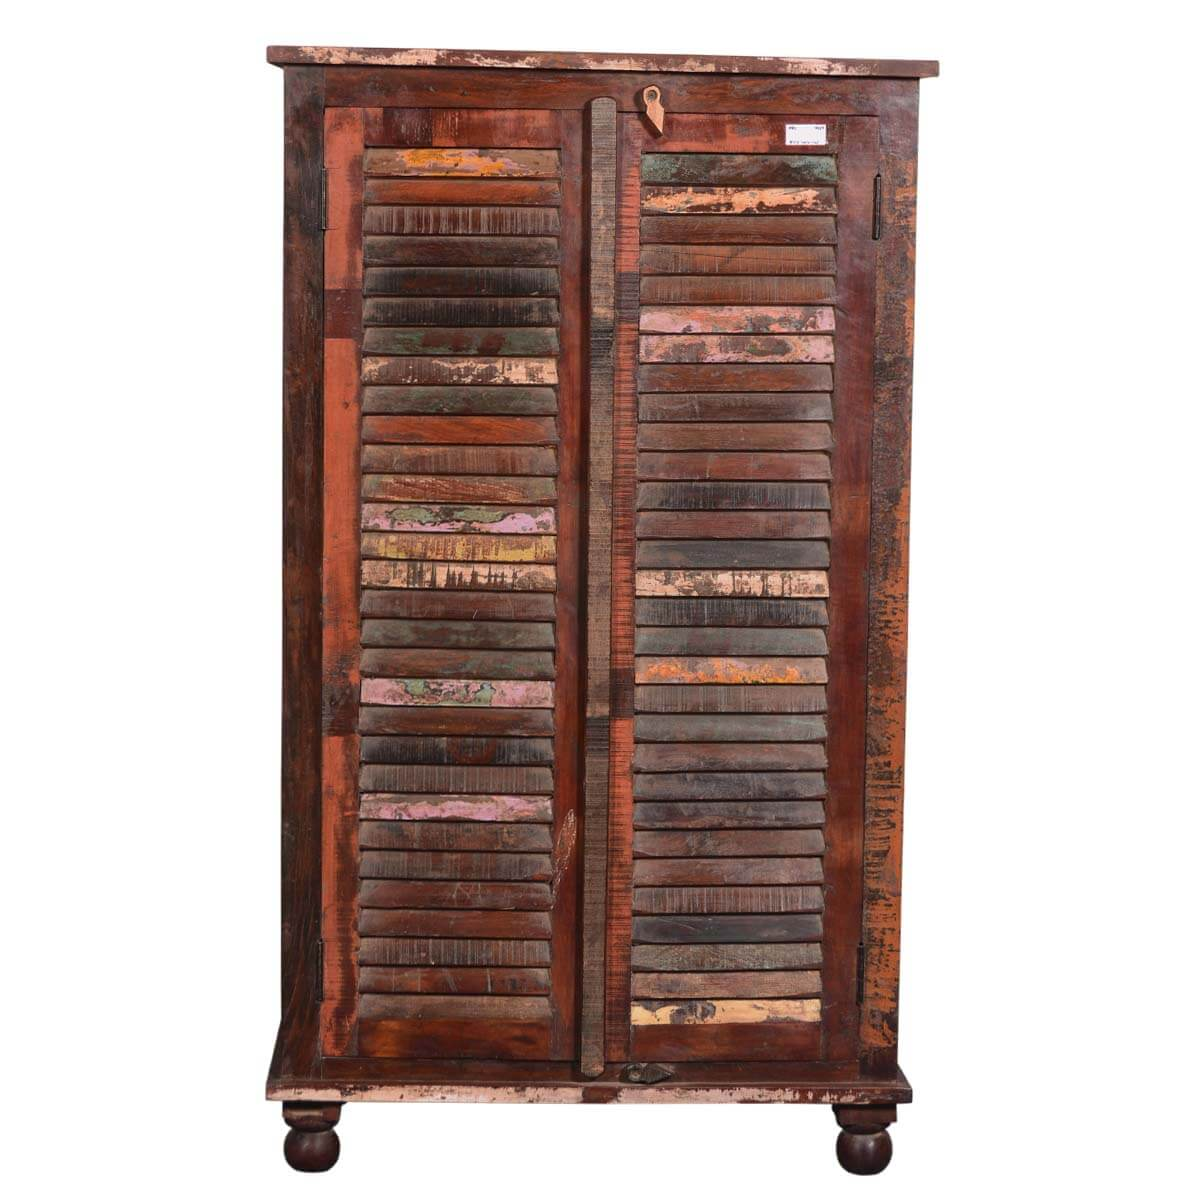 painted shutter doors reclaimed wood wardrobe armoire cabinet. Black Bedroom Furniture Sets. Home Design Ideas